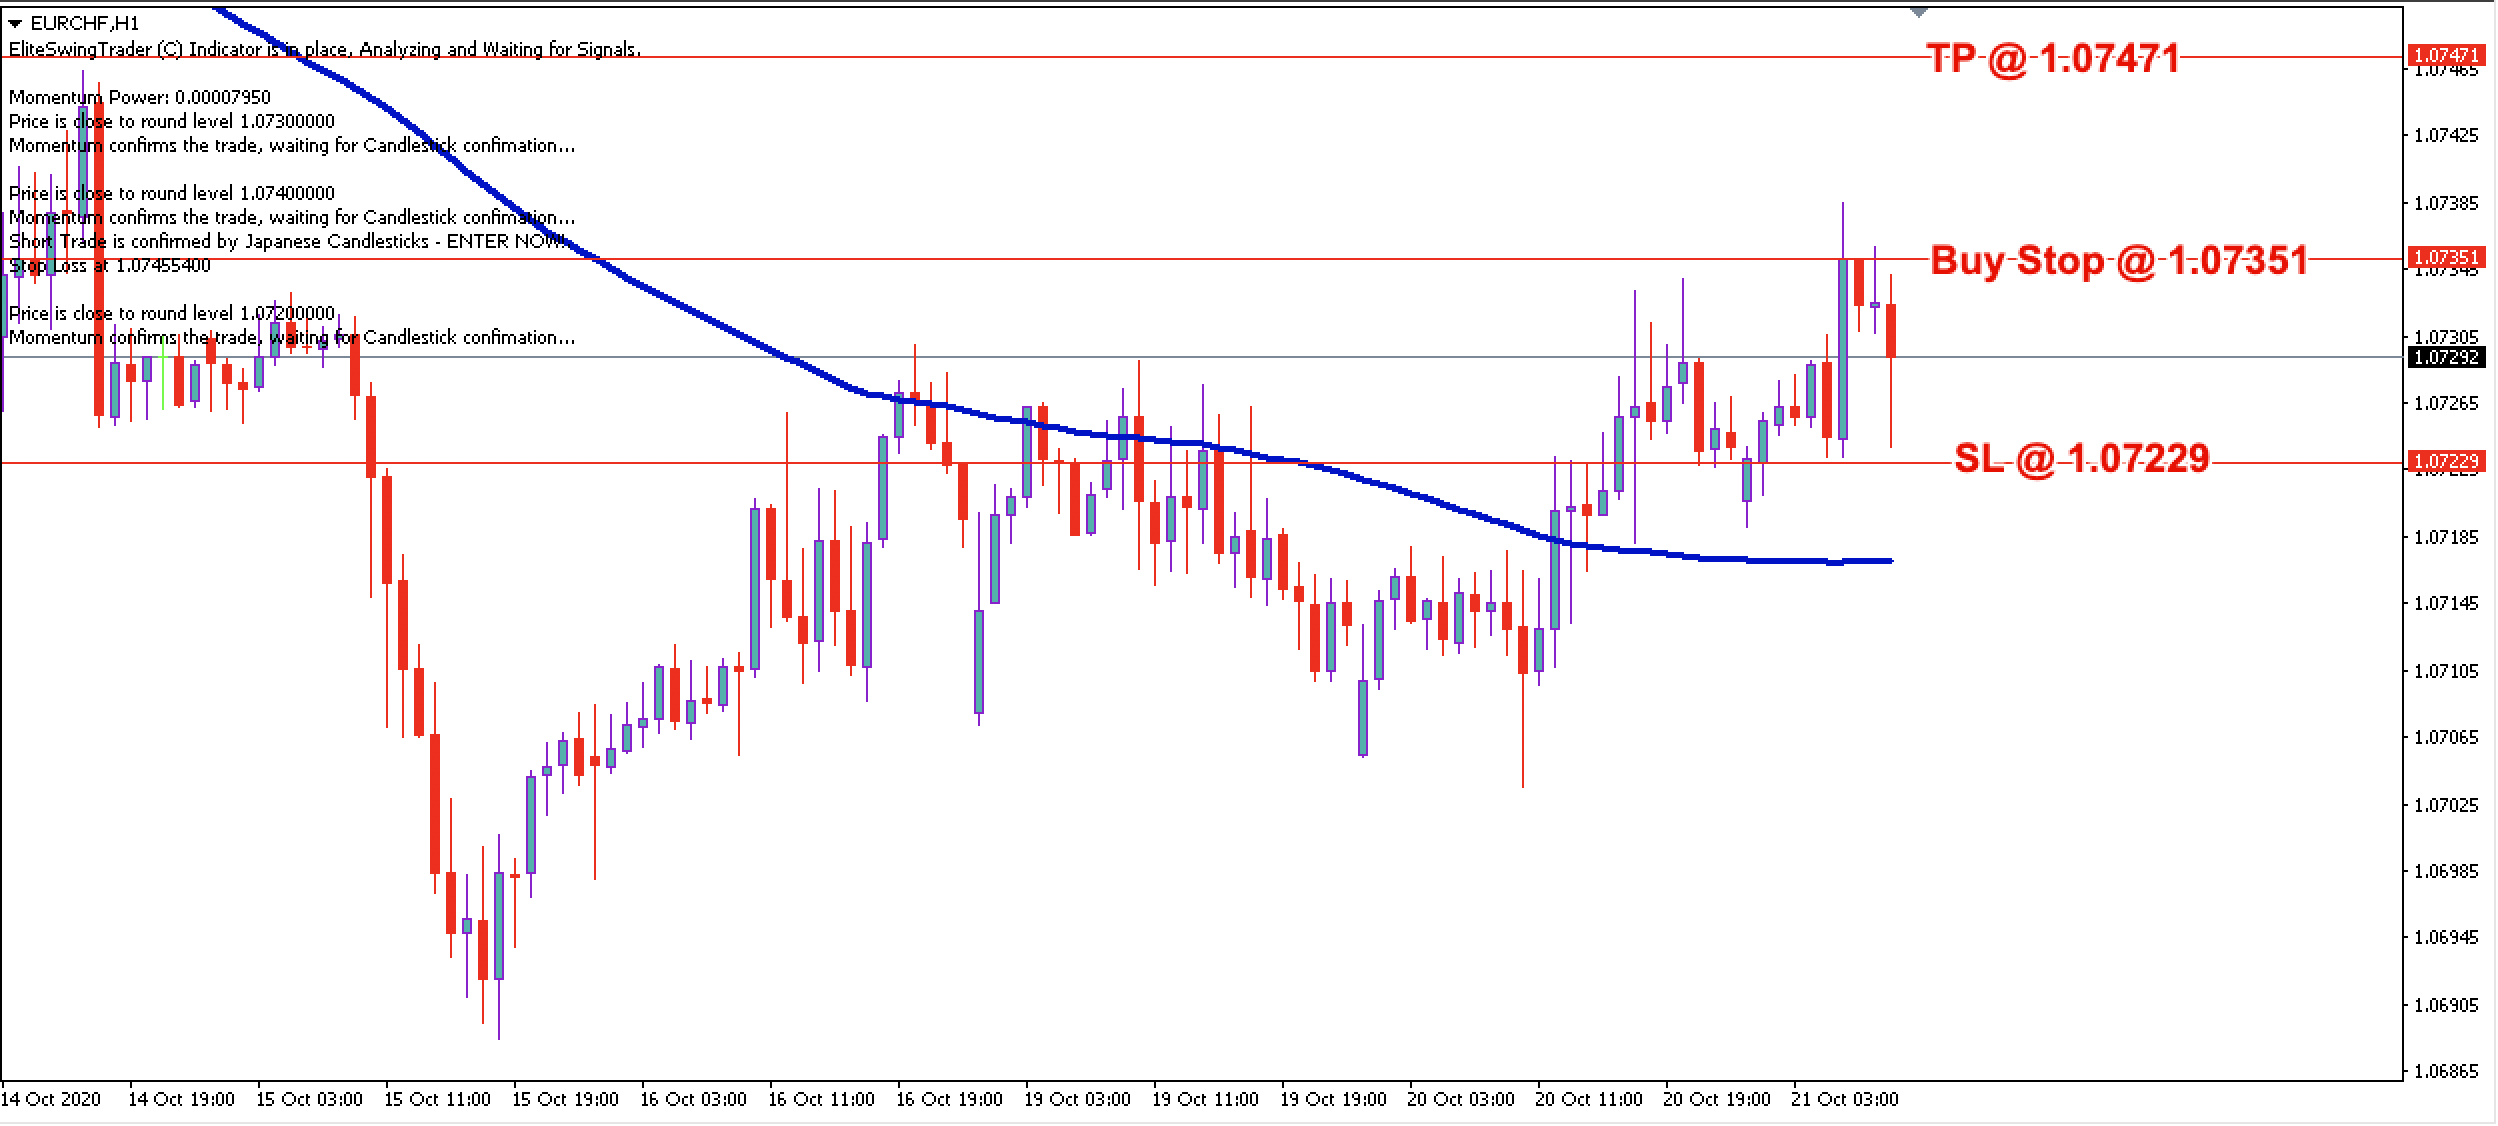 EUR/CHF Daily Price Forecast - 21st Oct 2020